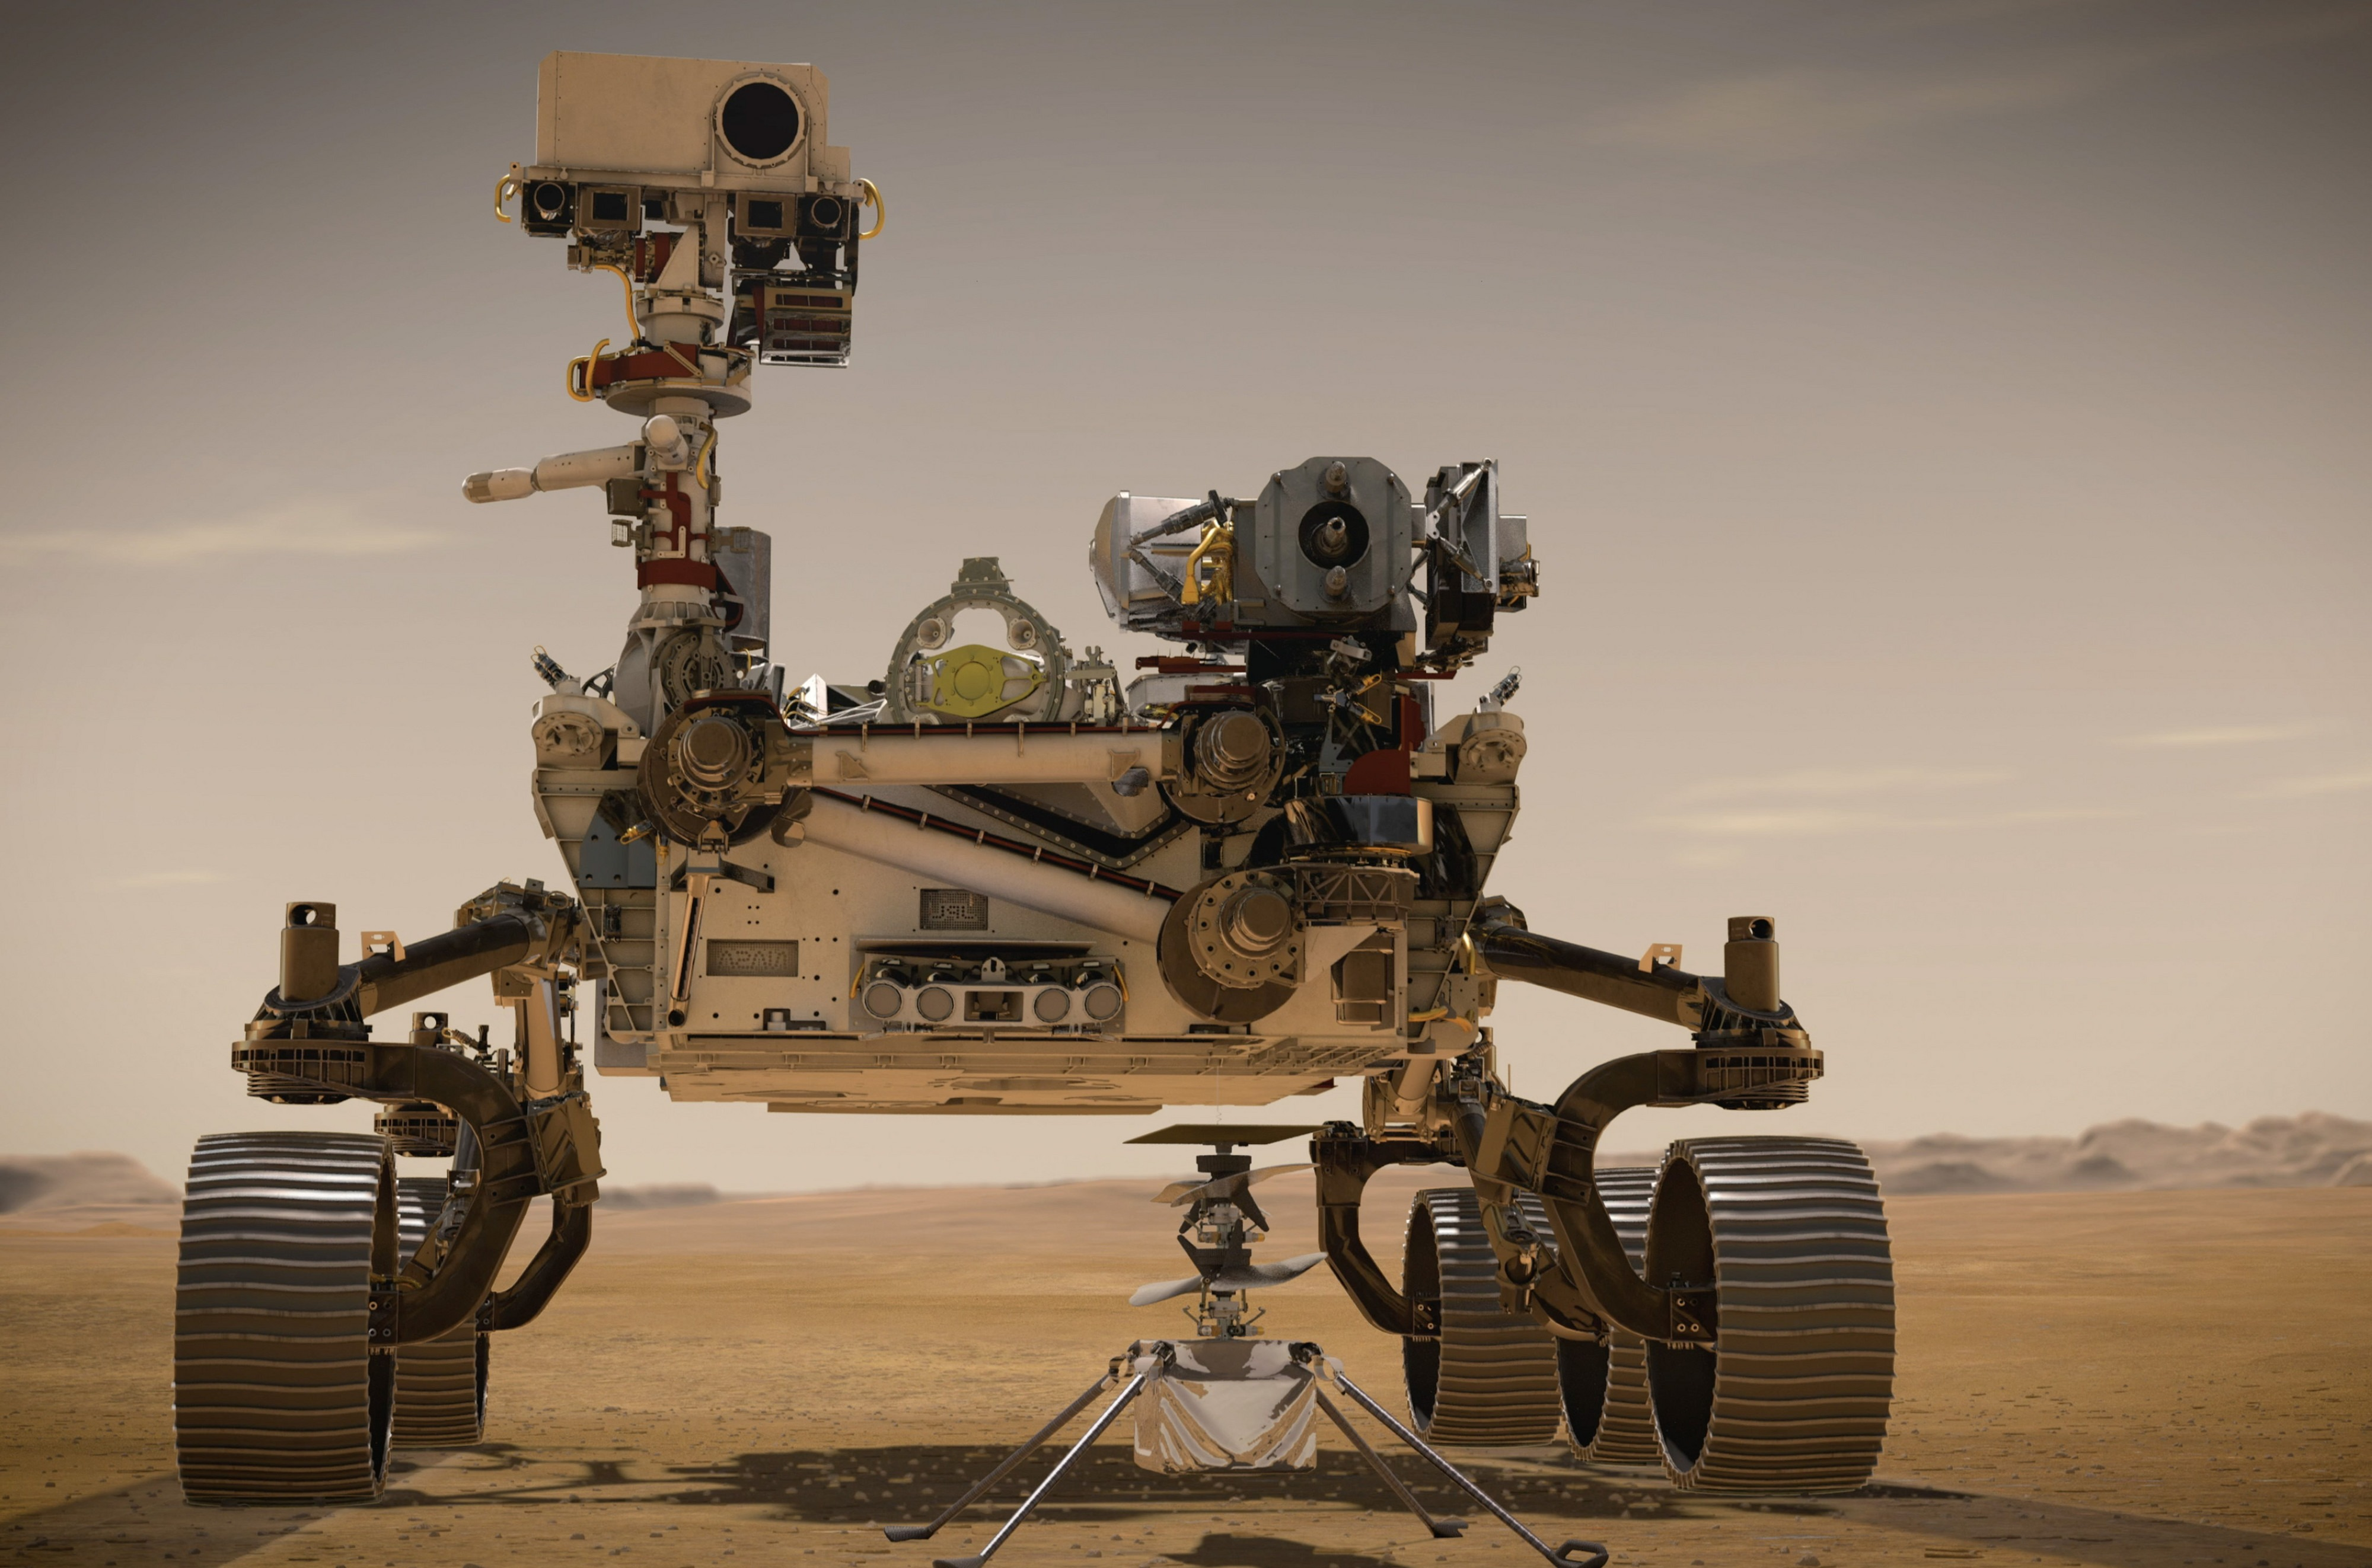 NASA's Perseverance rover reaches speeds of nearly 12,500 mph